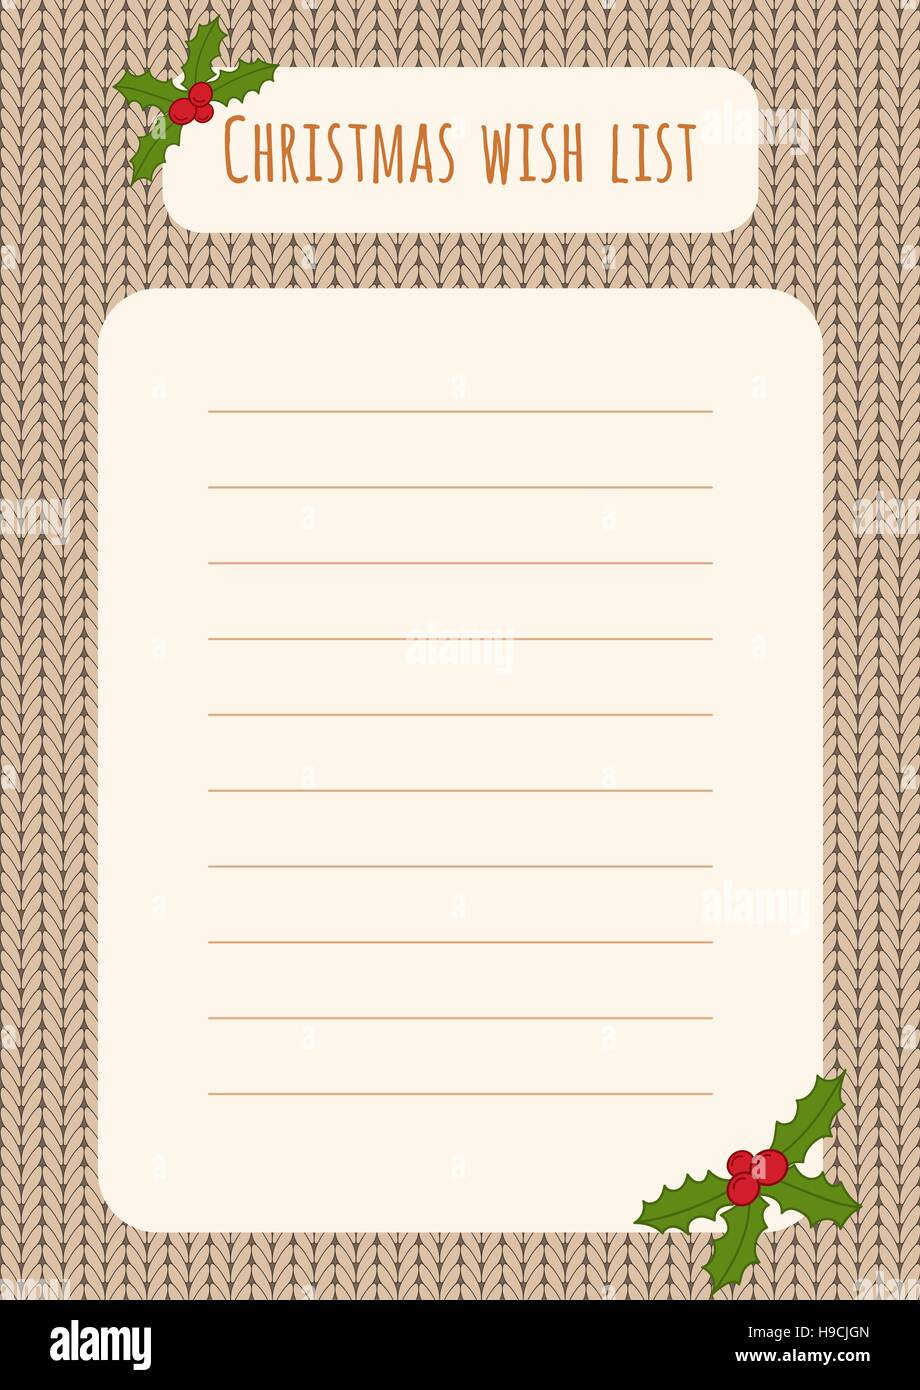 Christmas Wish List Design Template Over A Knitted Background With